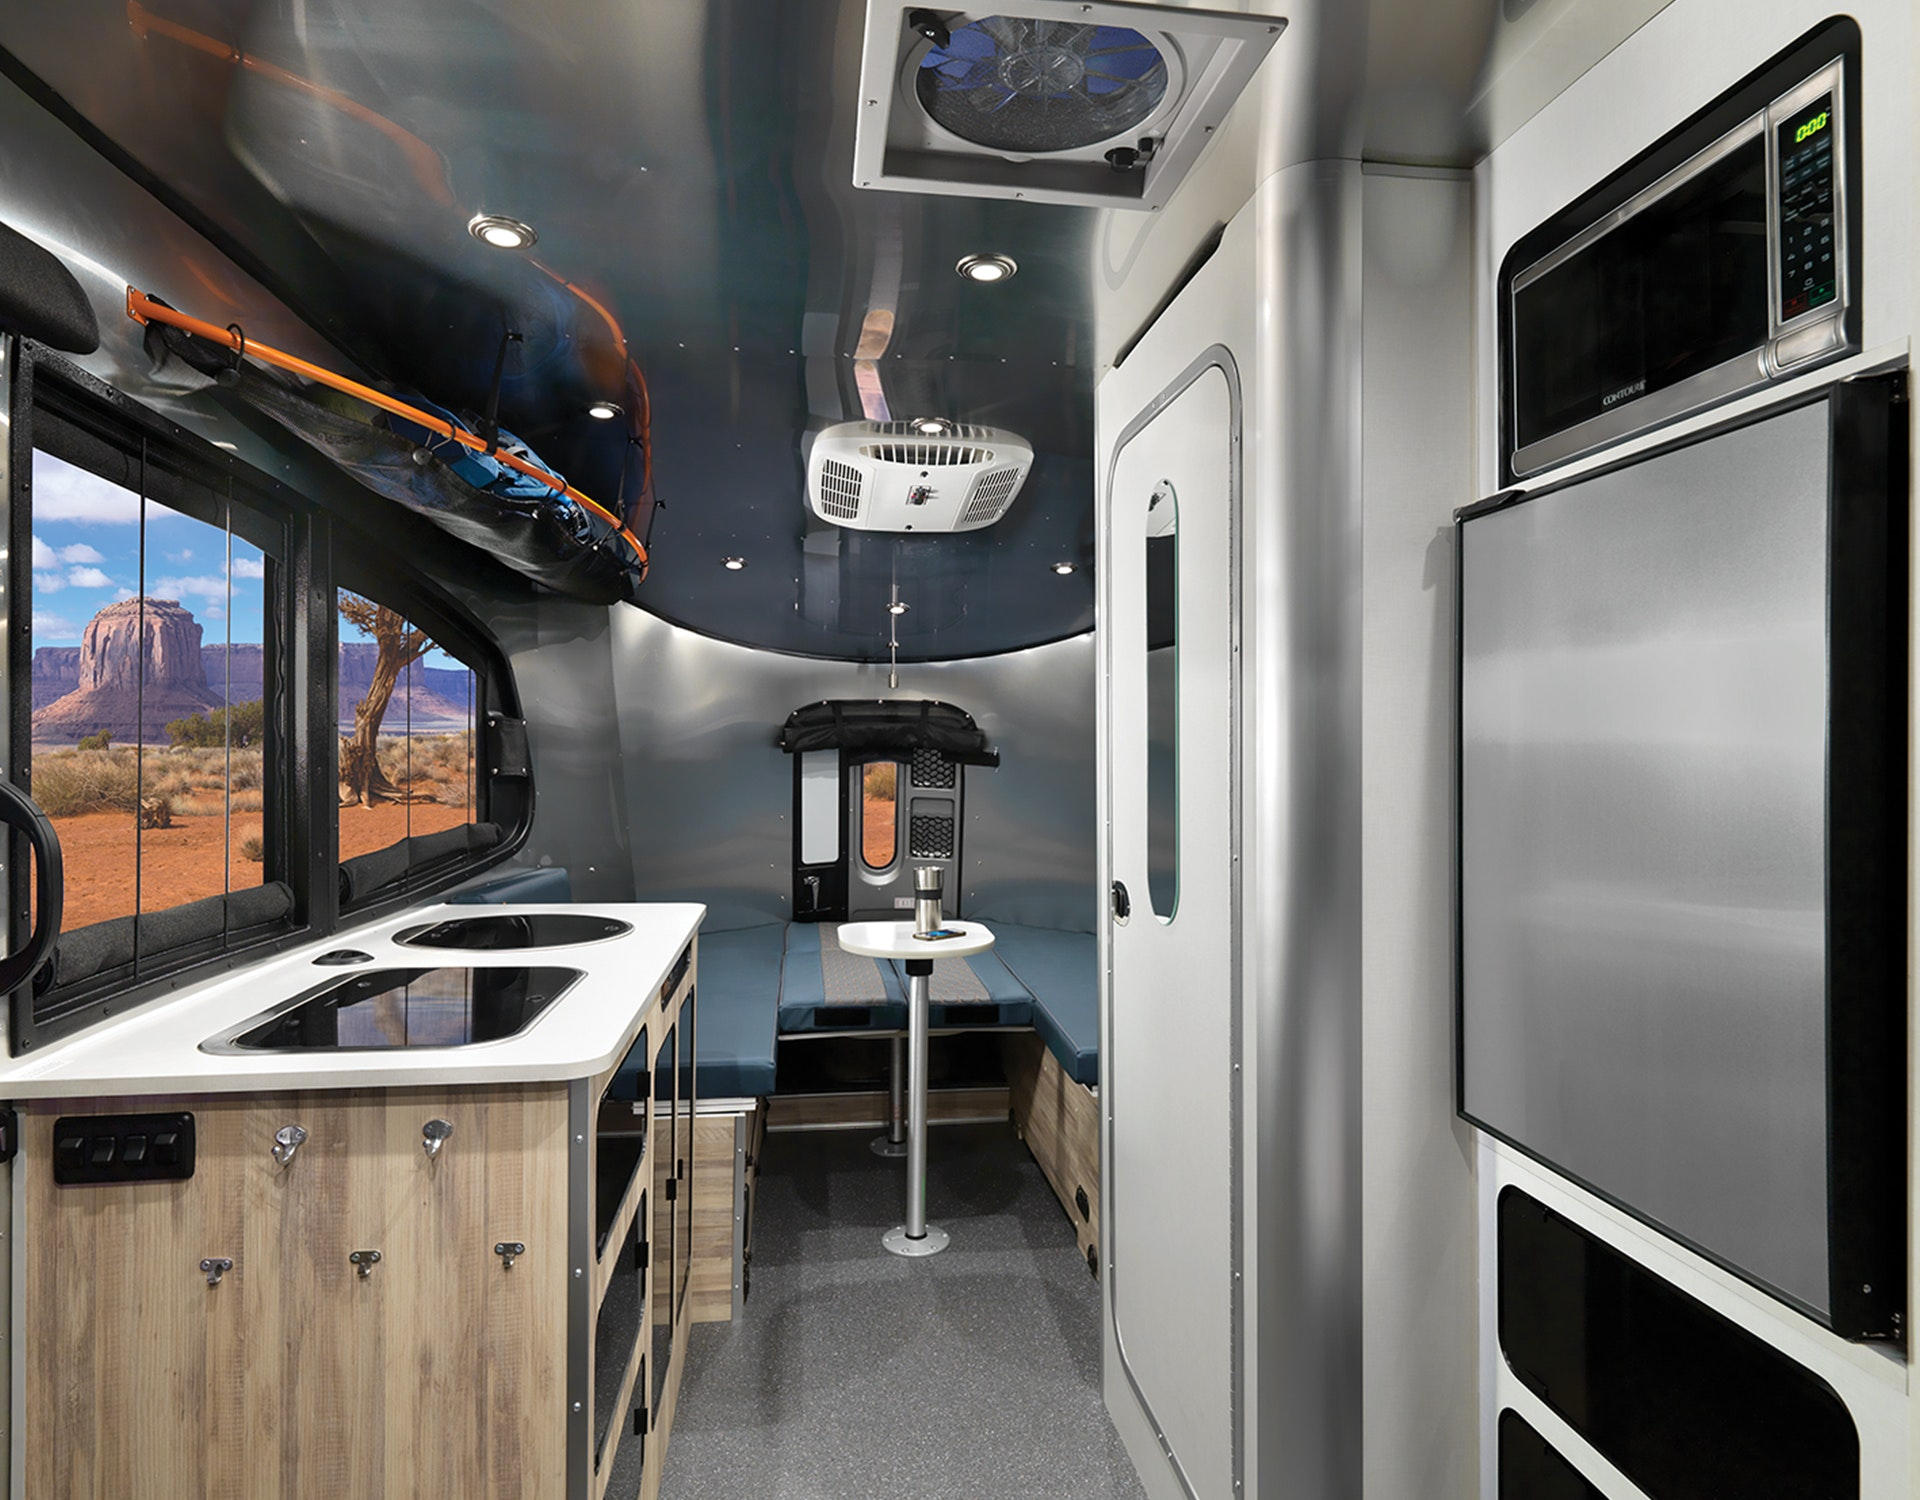 Airstream-Basecamp-20-Glacier-Lake-Interior-F2B-One-Table-U-Seating